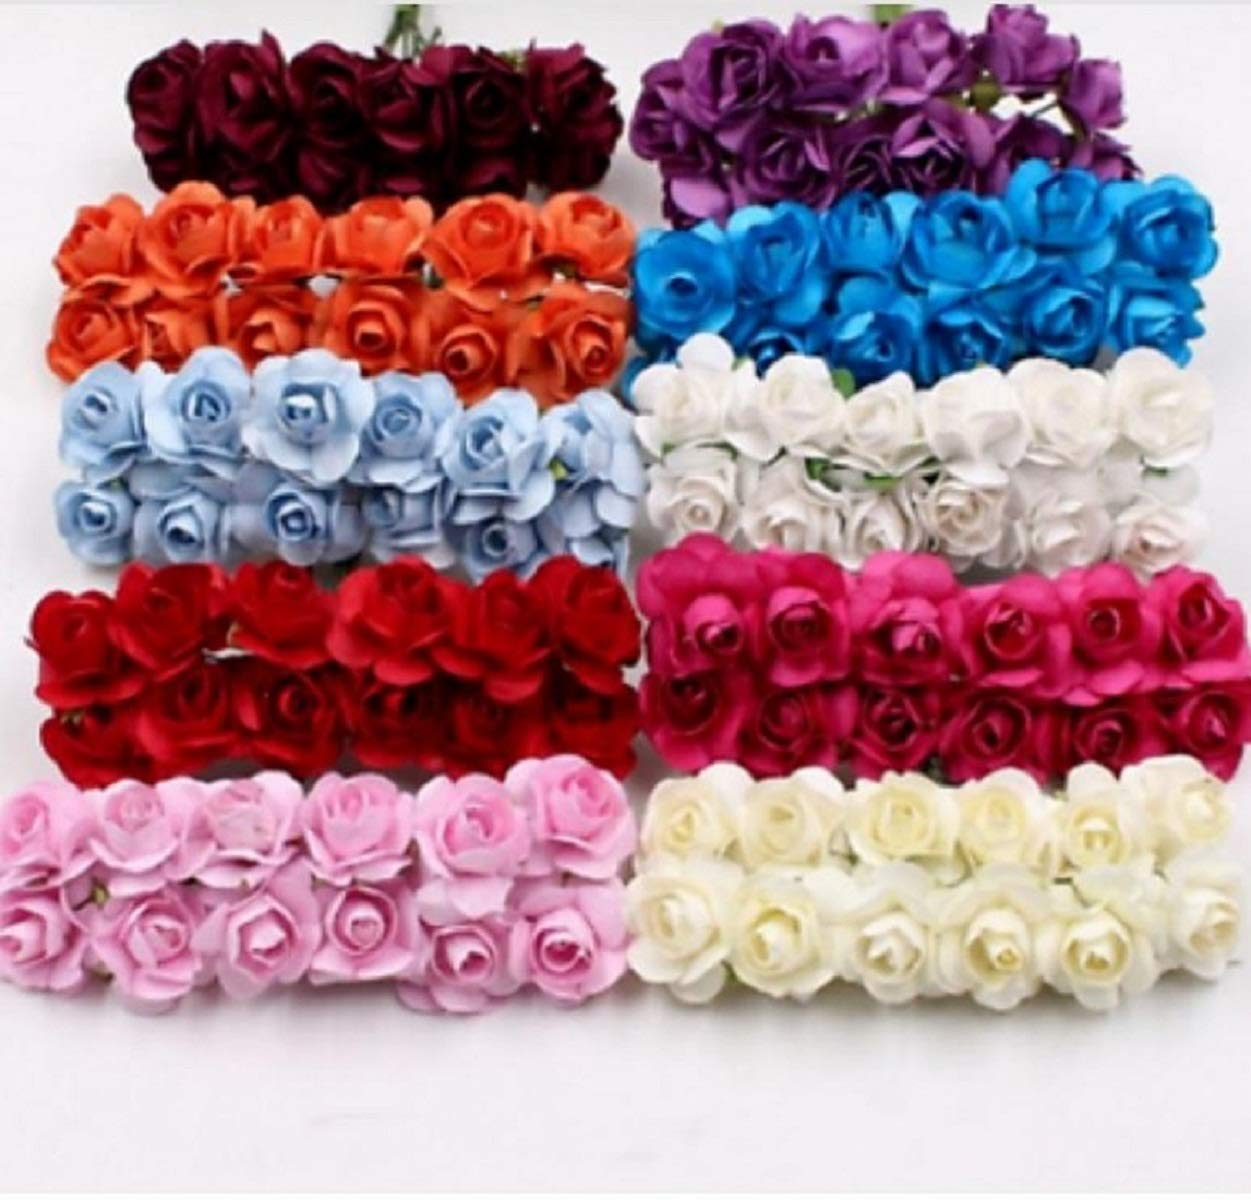 Buy Sanvatsar Artificial Rose Paper Flower For Jewellery Making Craft Material Decoration 144 Pcs Cream Online At Low Prices In India Amazon In